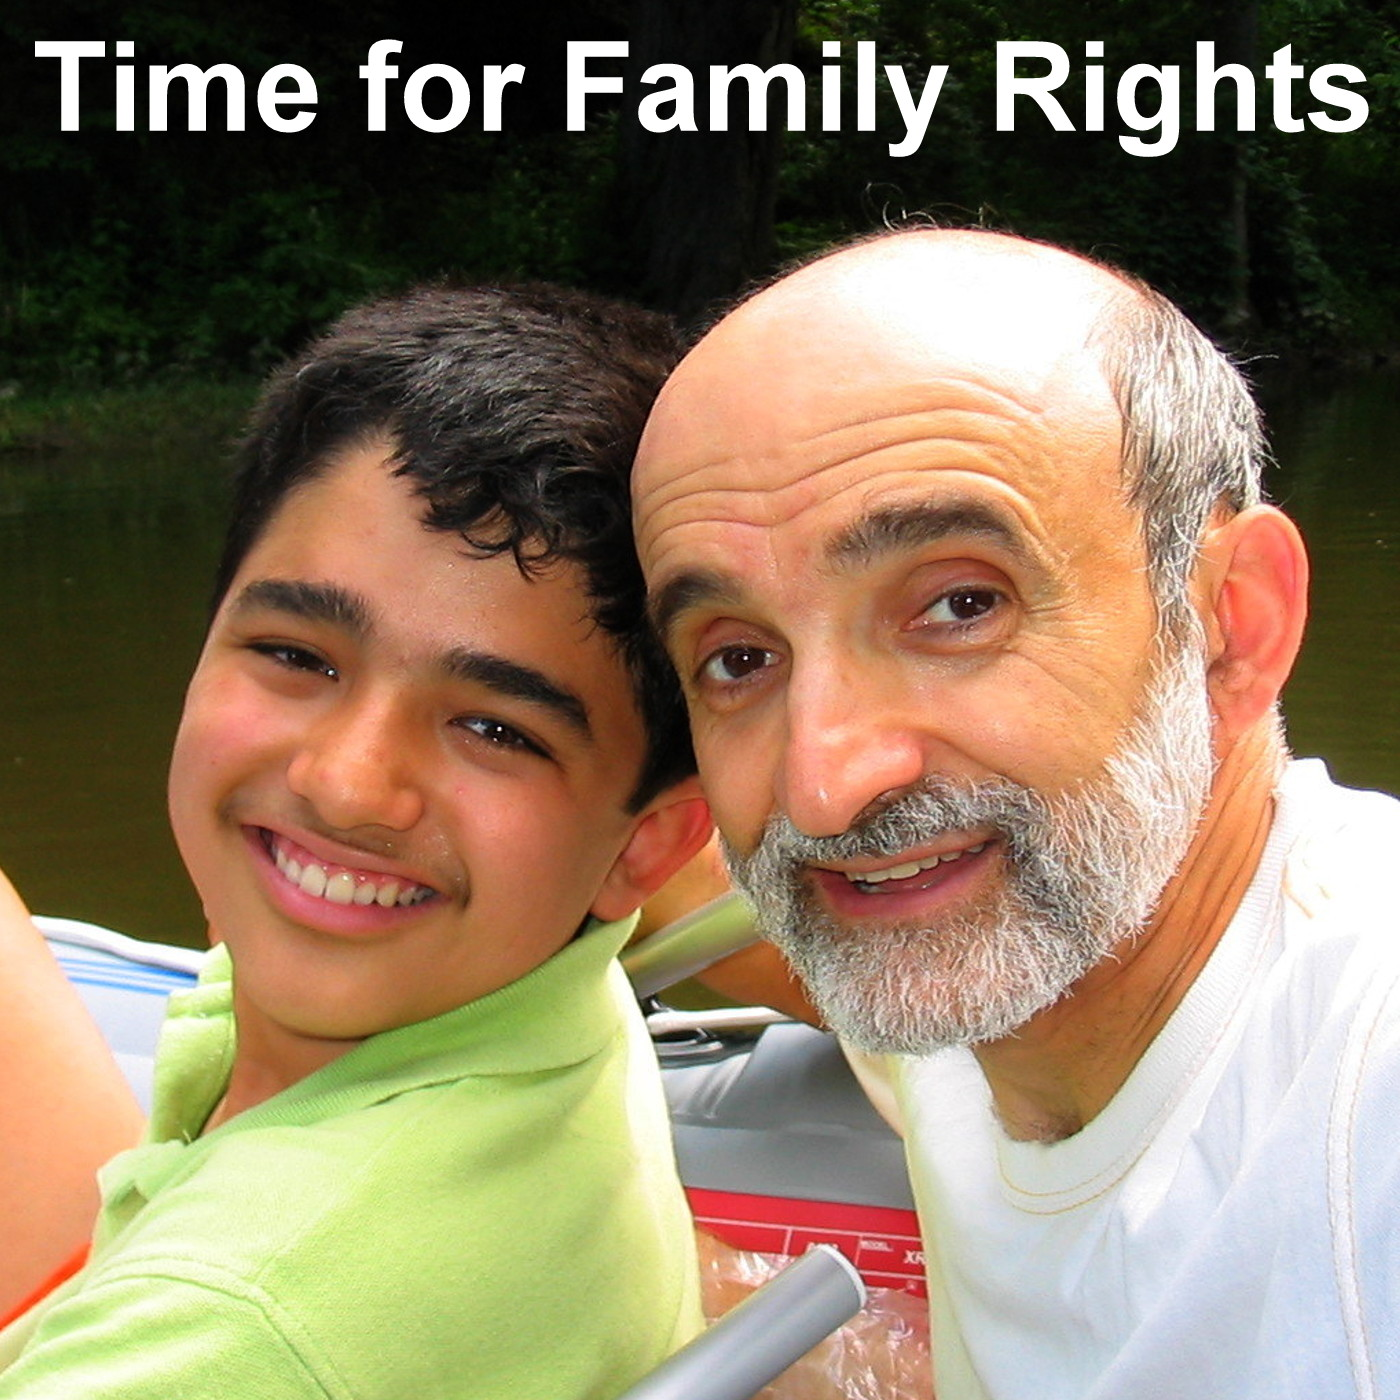 The Recognition & Protection of our Family Rights